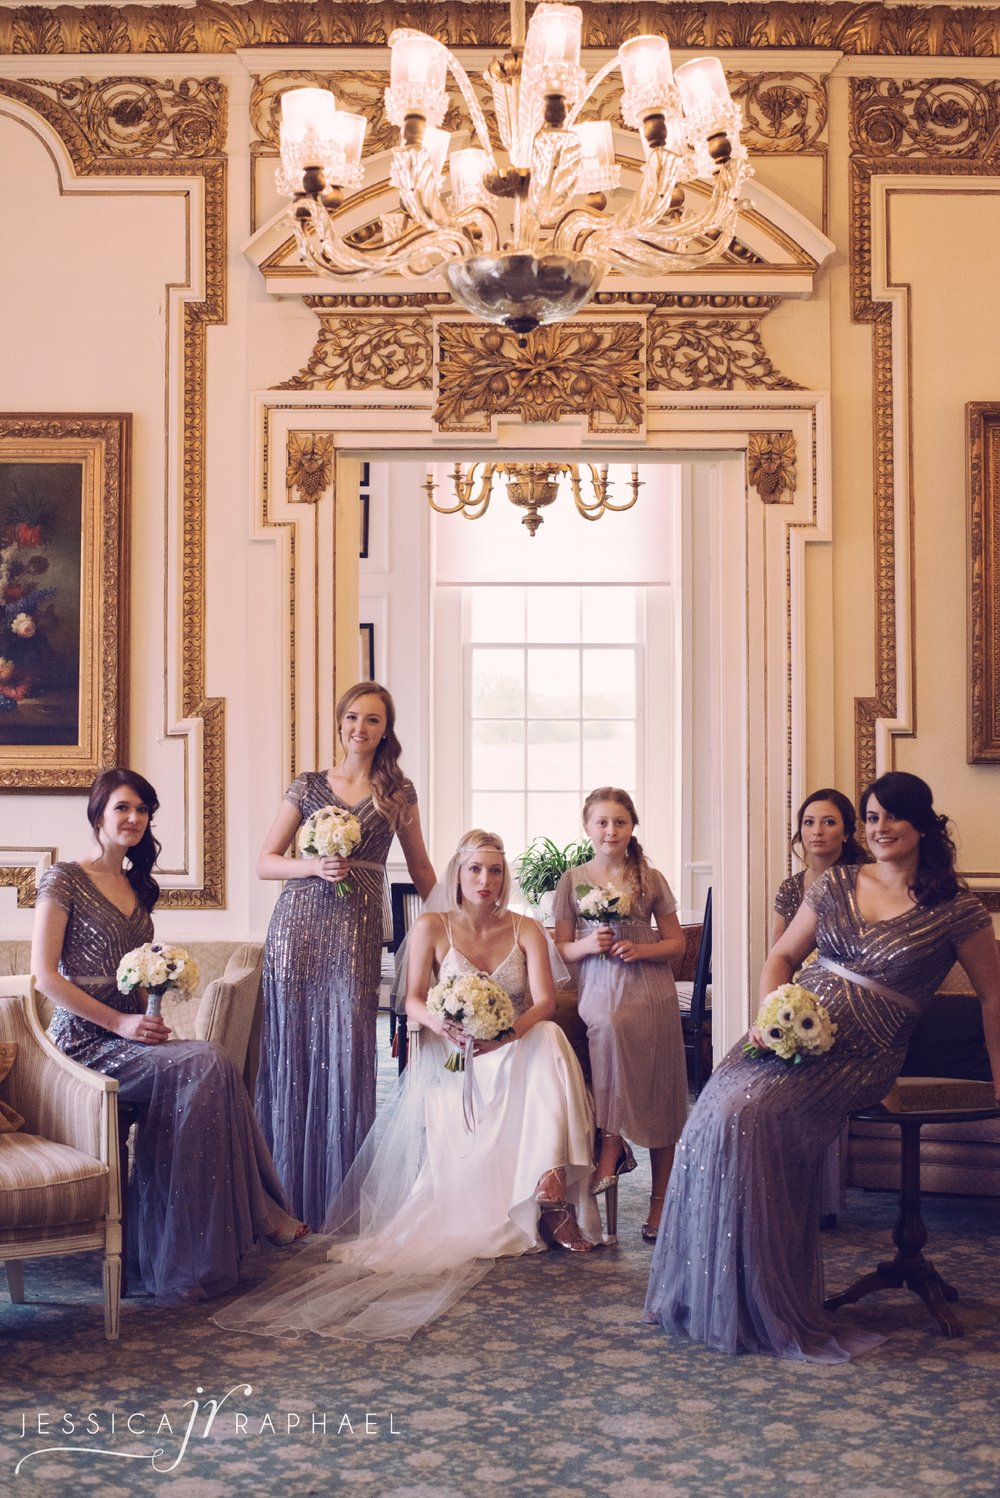 Now this is an example of one of the rare occasions I will completely pose. I felt that with the Great Gatsby style & the look of this venue, it would work to create some 'Vogue' esque shots & these ladies were up for it!